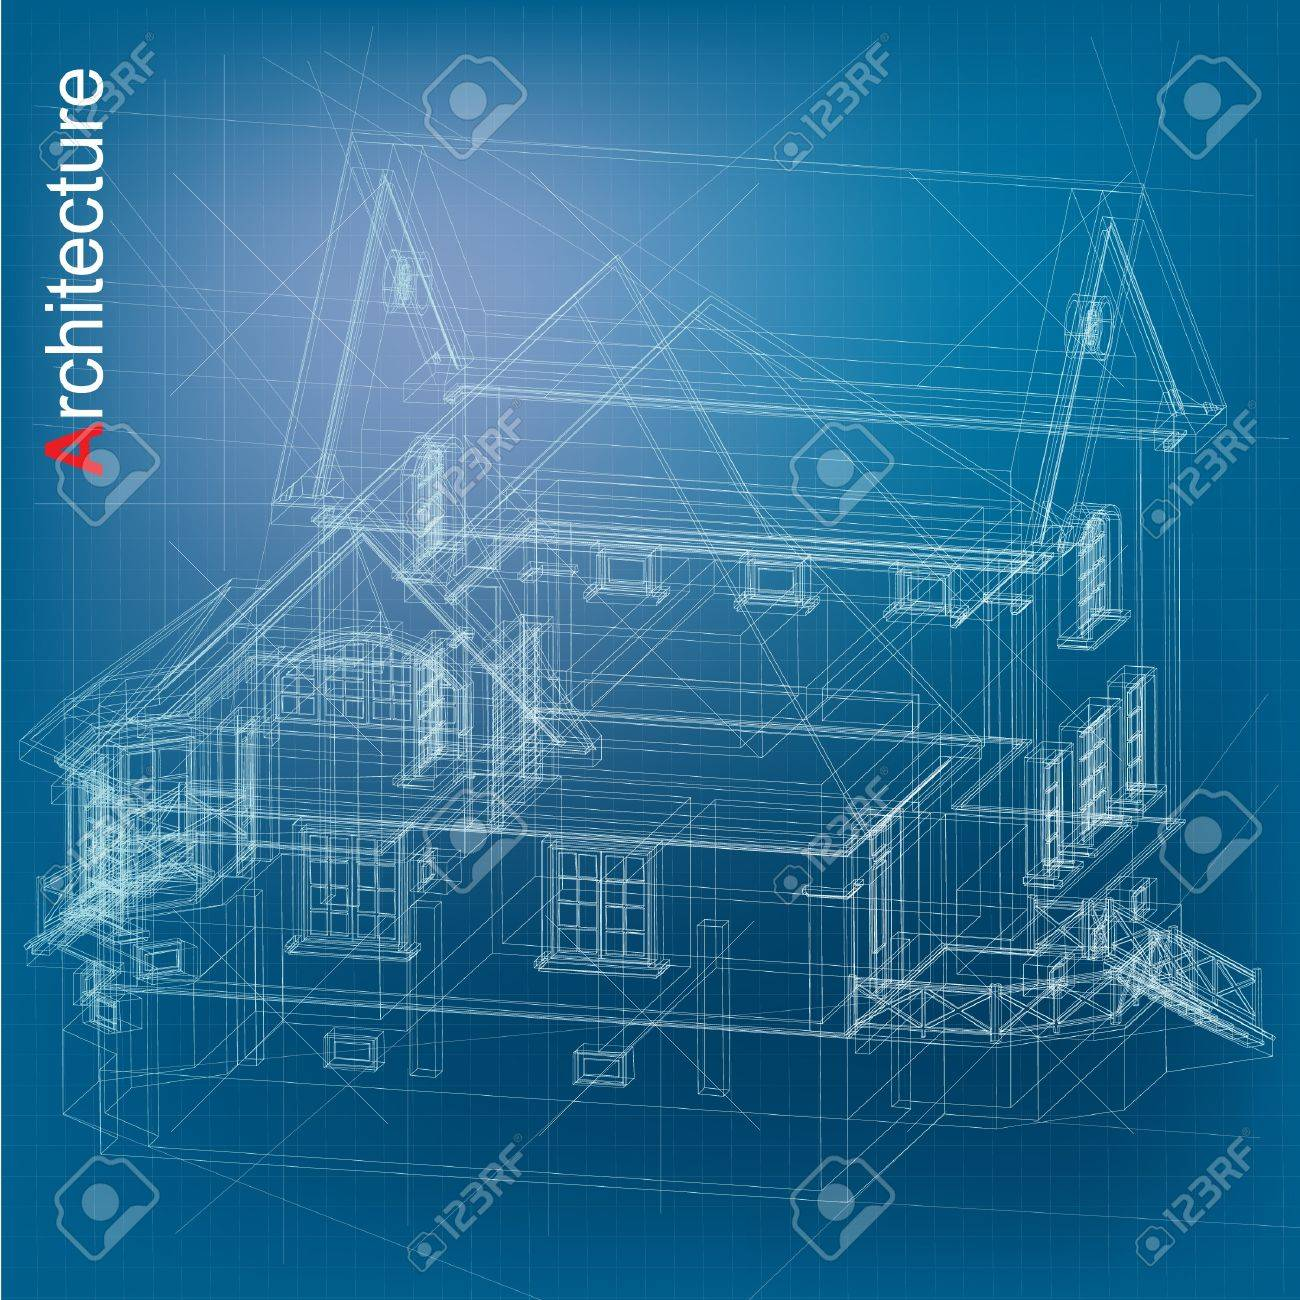 Urban blueprint vector architectural background royalty free urban blueprint vector architectural background stock vector 14404036 malvernweather Gallery